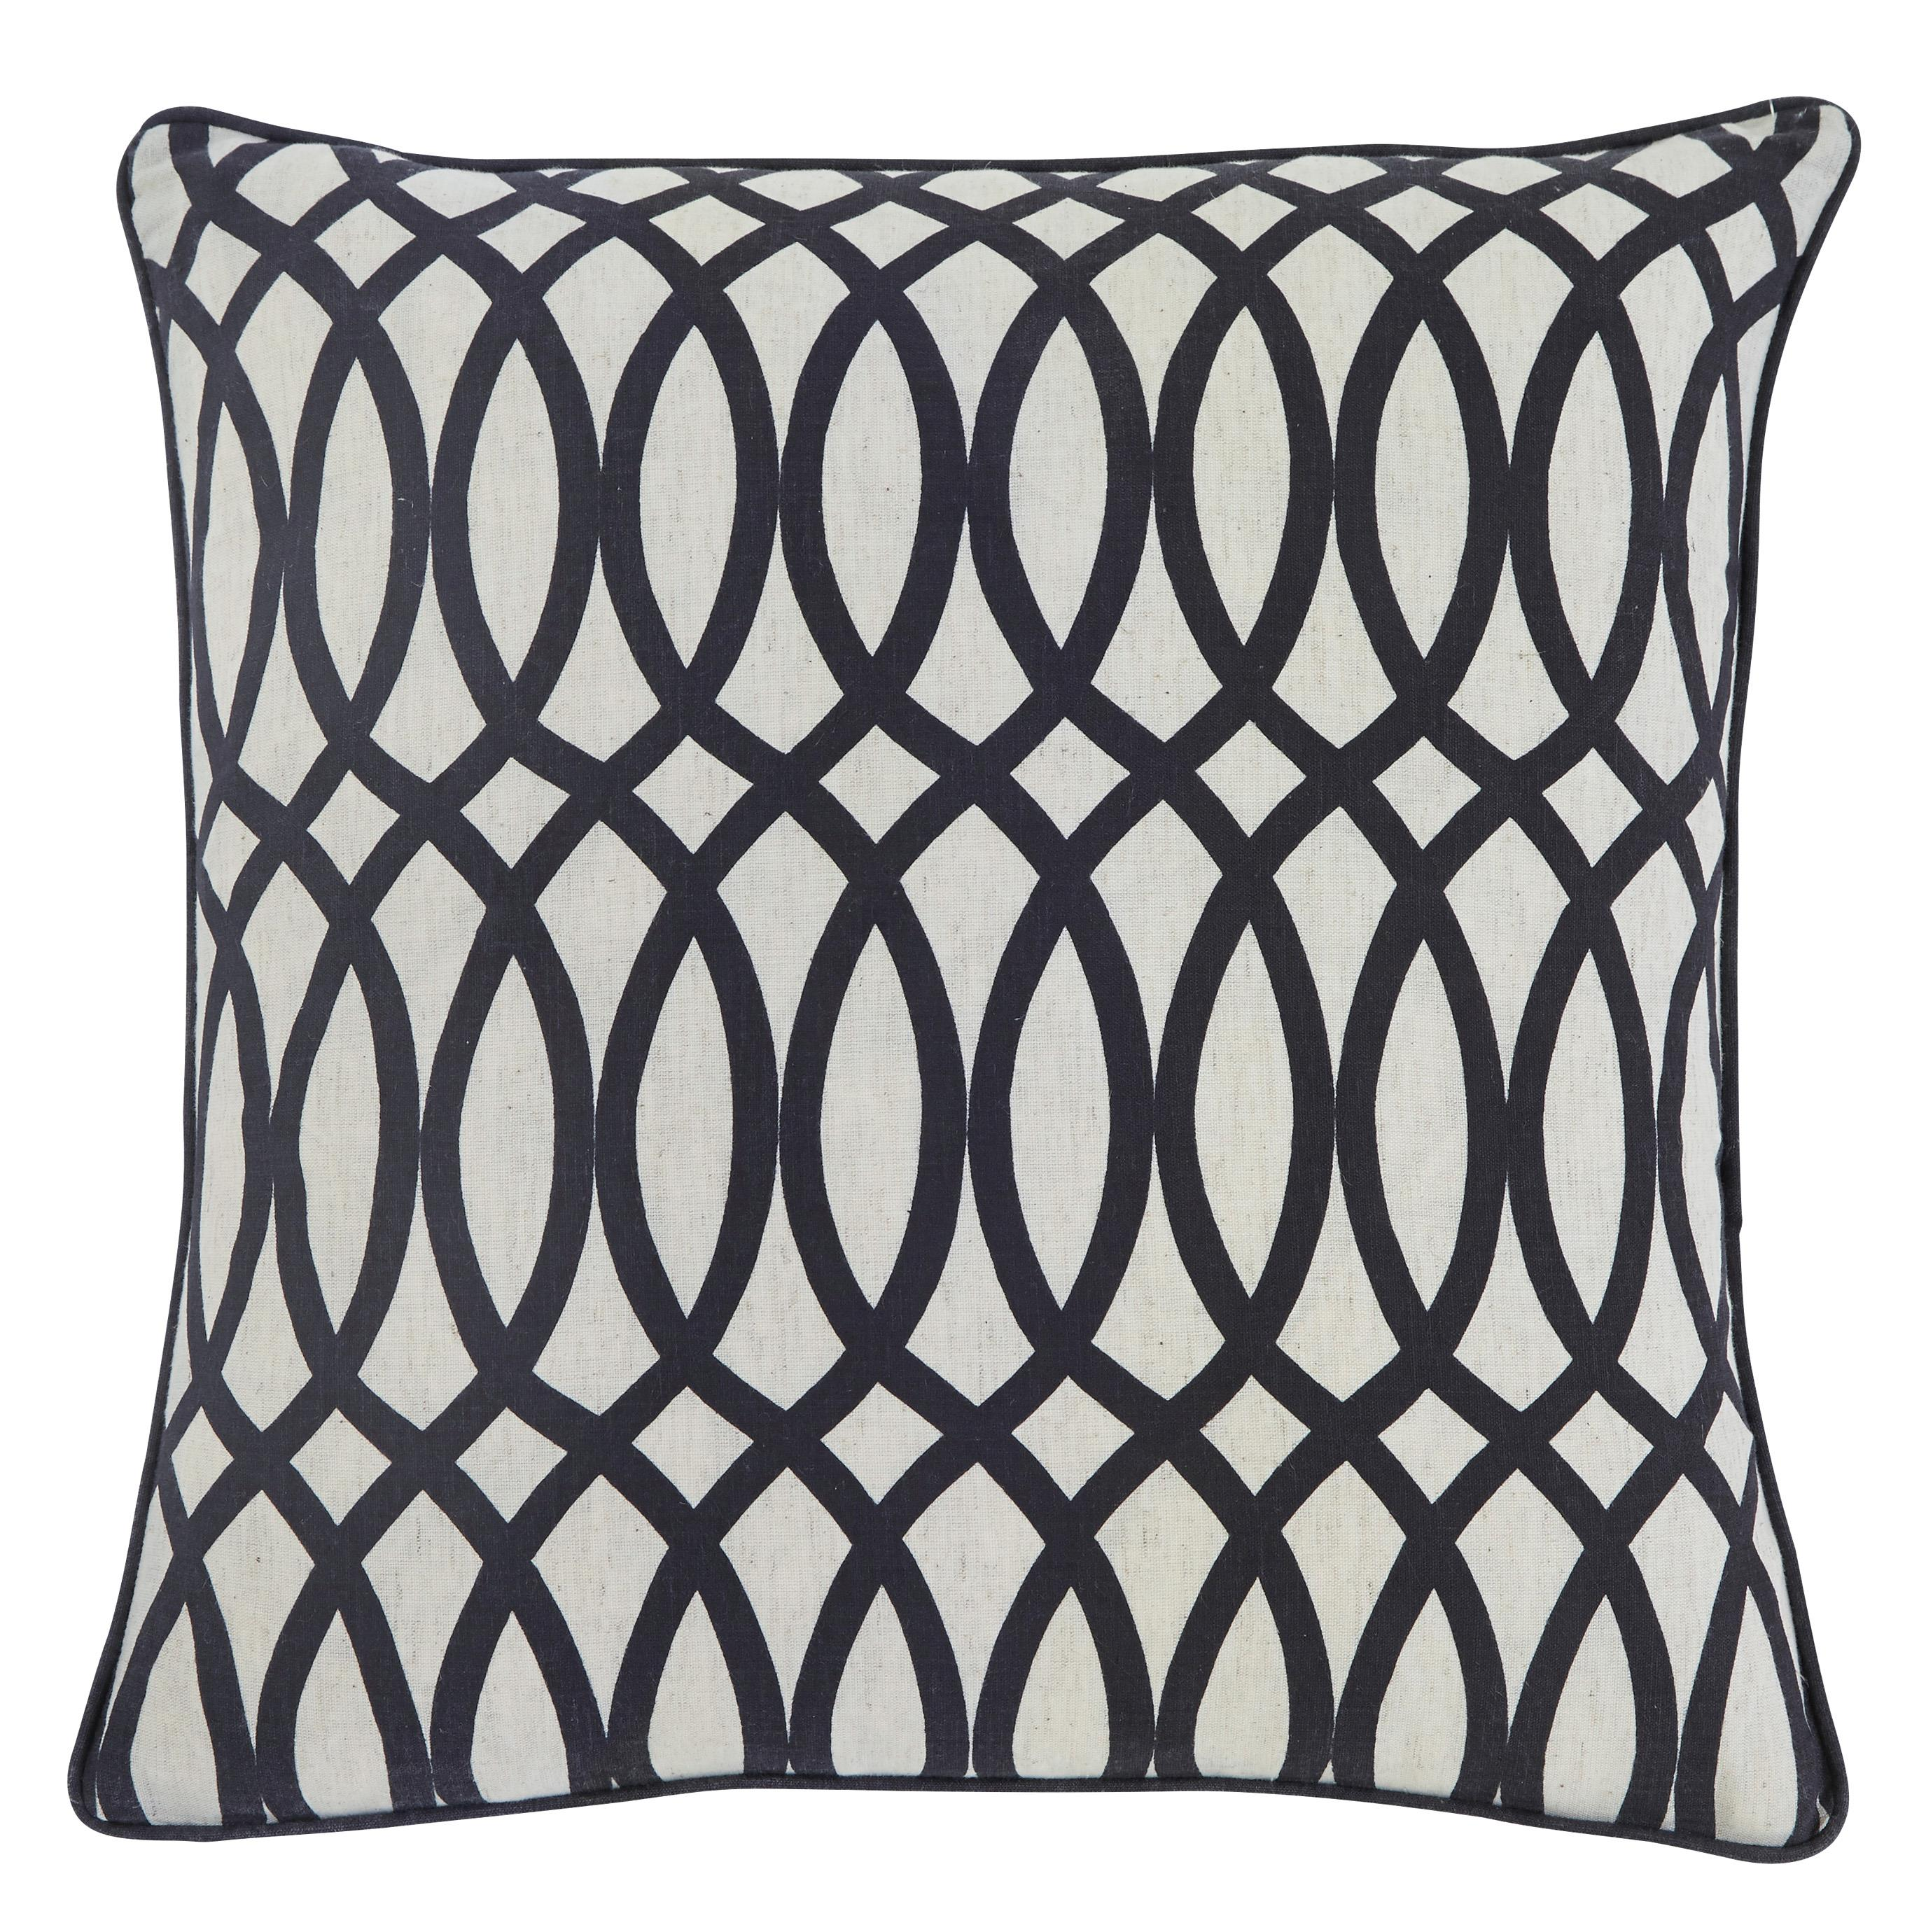 Signature Design by Ashley Pillows Gate - Black Pillow Cover - Item Number: A1000321P